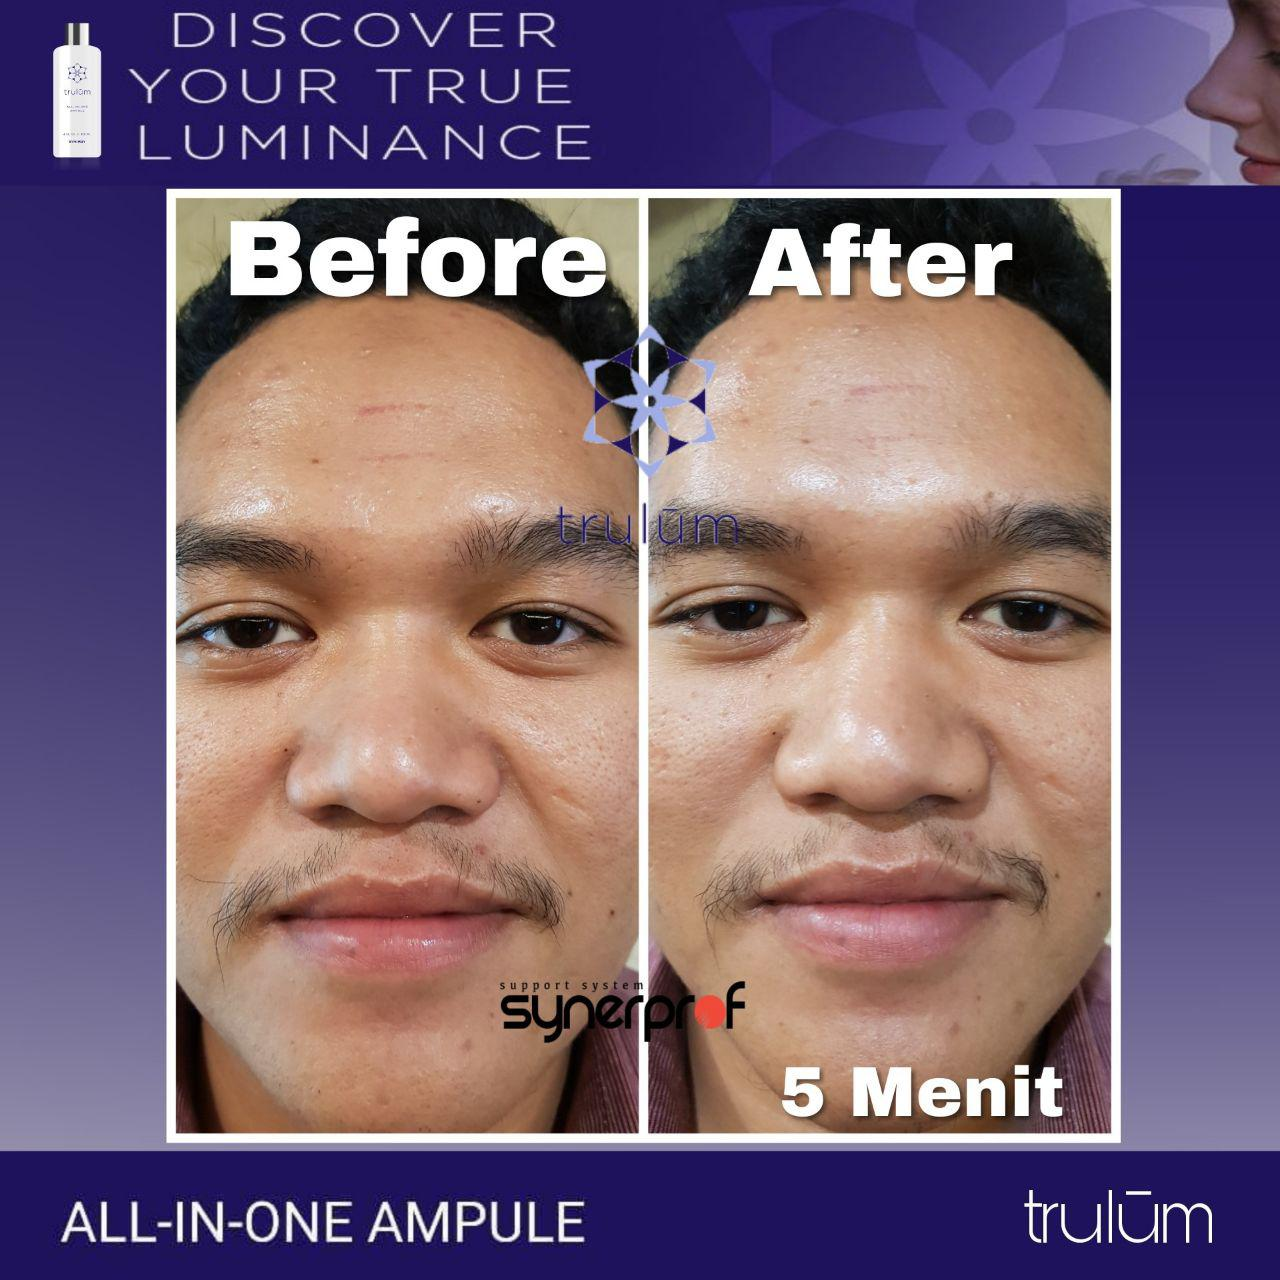 Jual Trulum All In One Ampoule Di Pulau Maya WA: 08112338376